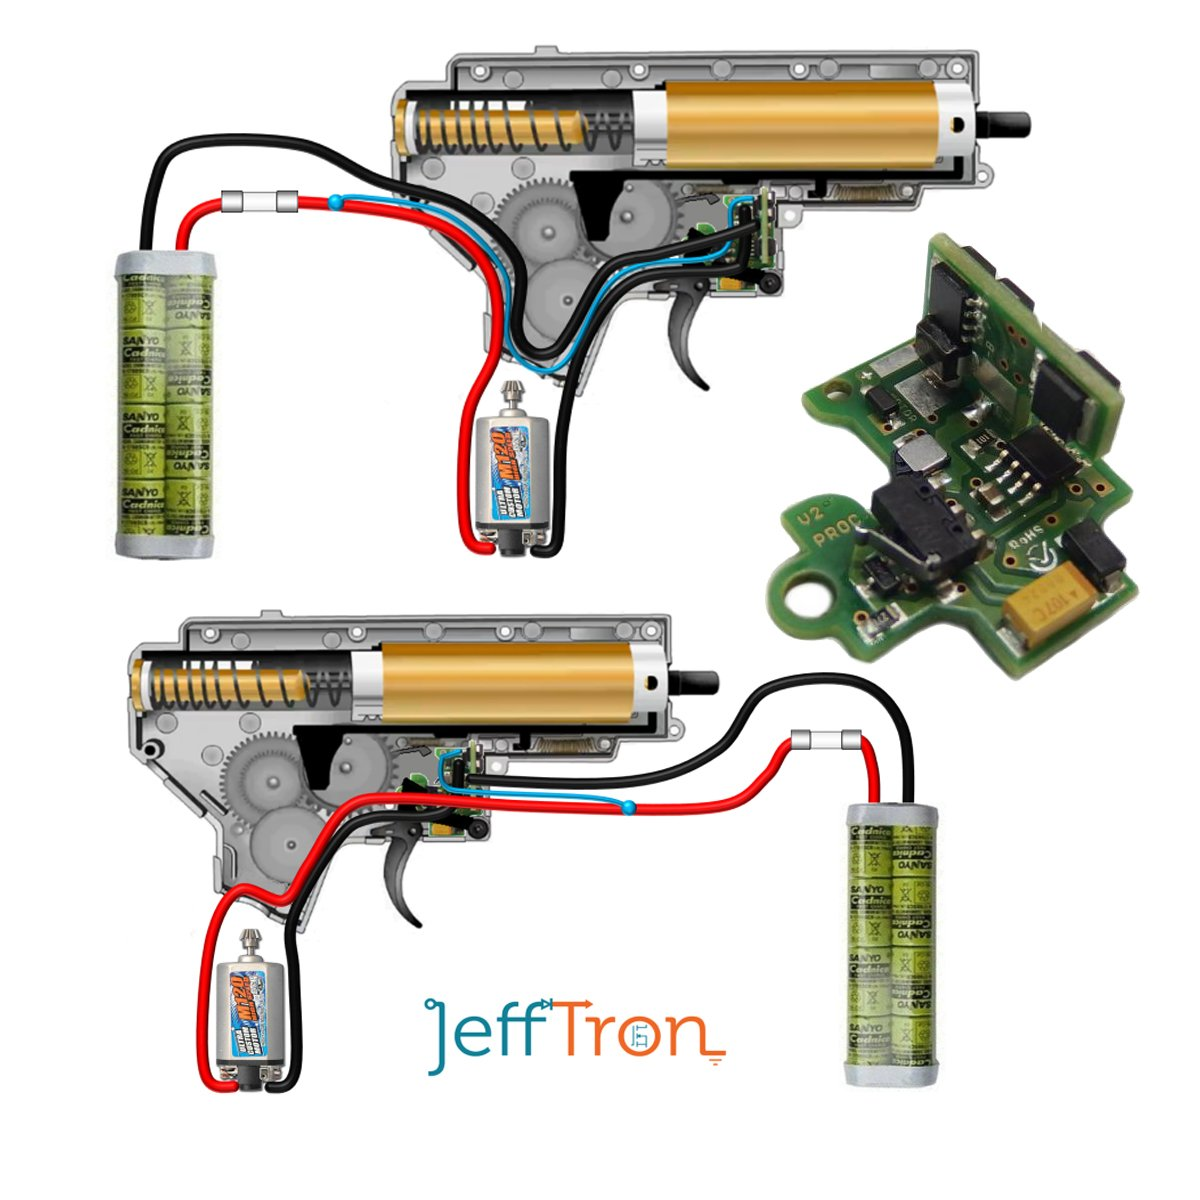 Jefftron Airsoft Mosfet Processor Unit V2 Micro Processor Trigger  Replacement: Amazon.co.uk: Sports & Outdoors